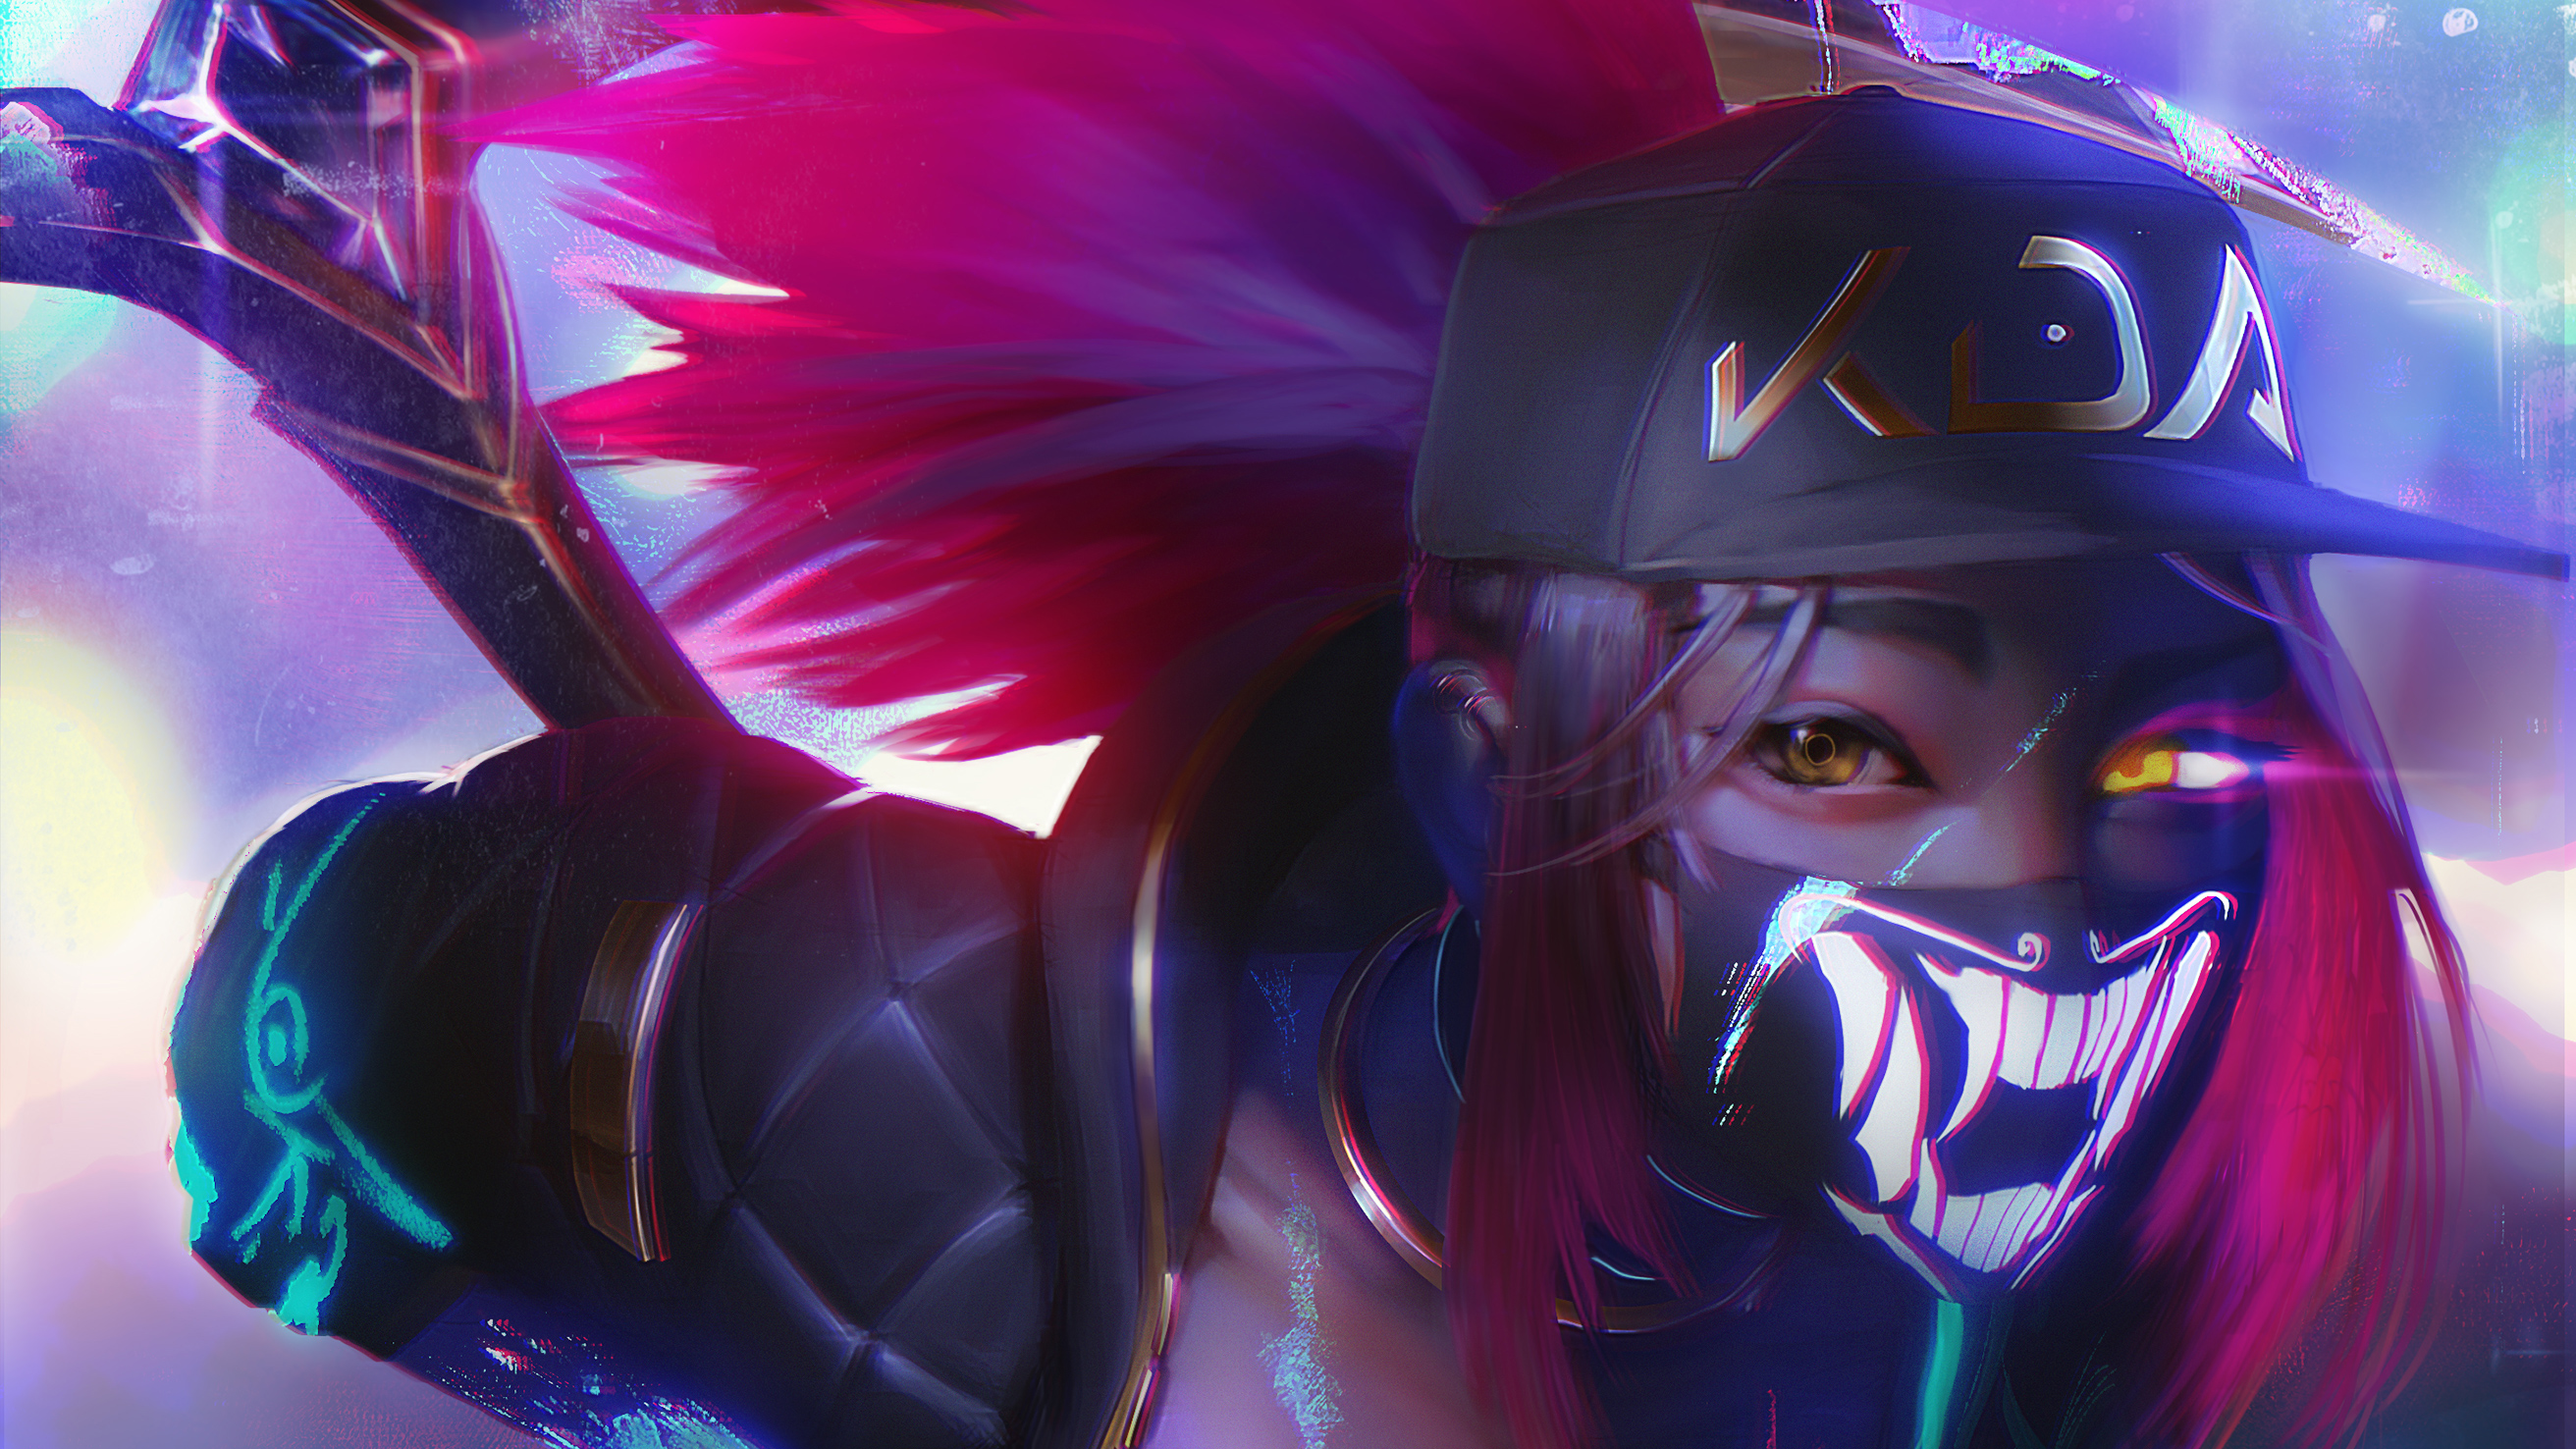 Akali League Of Legends Fan Art Hd Artist 4k Wallpapers Images